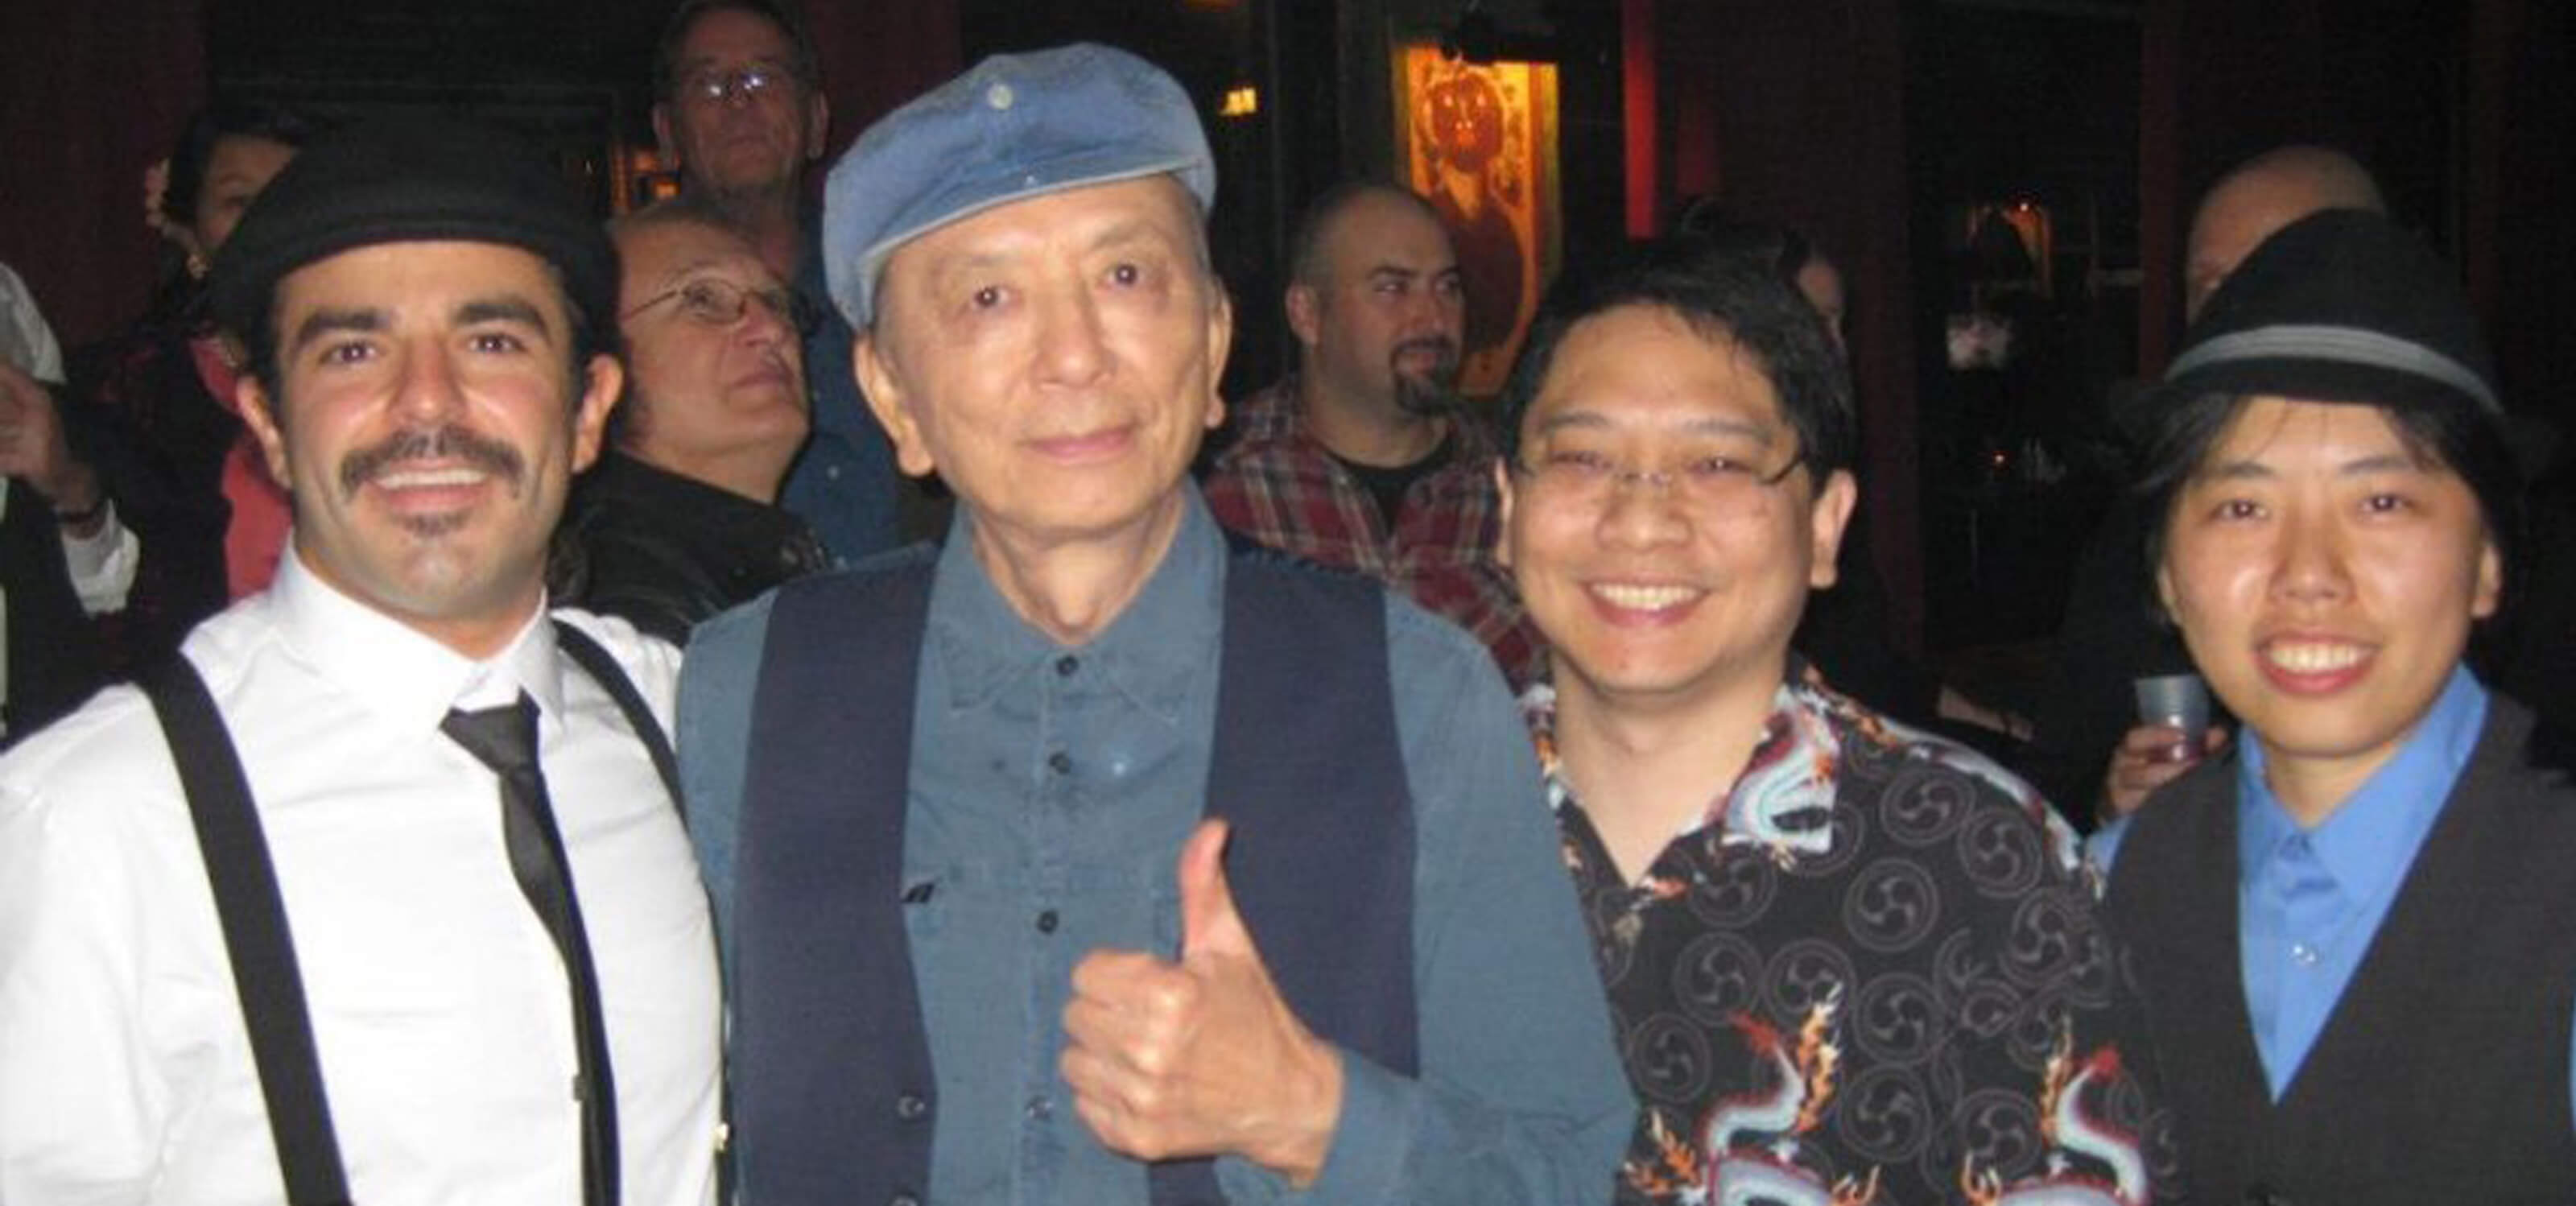 Photo of DigiPen alumna Joanna Leung and two of her colleagues with Call of Duty voice actor James Hong at a launch party